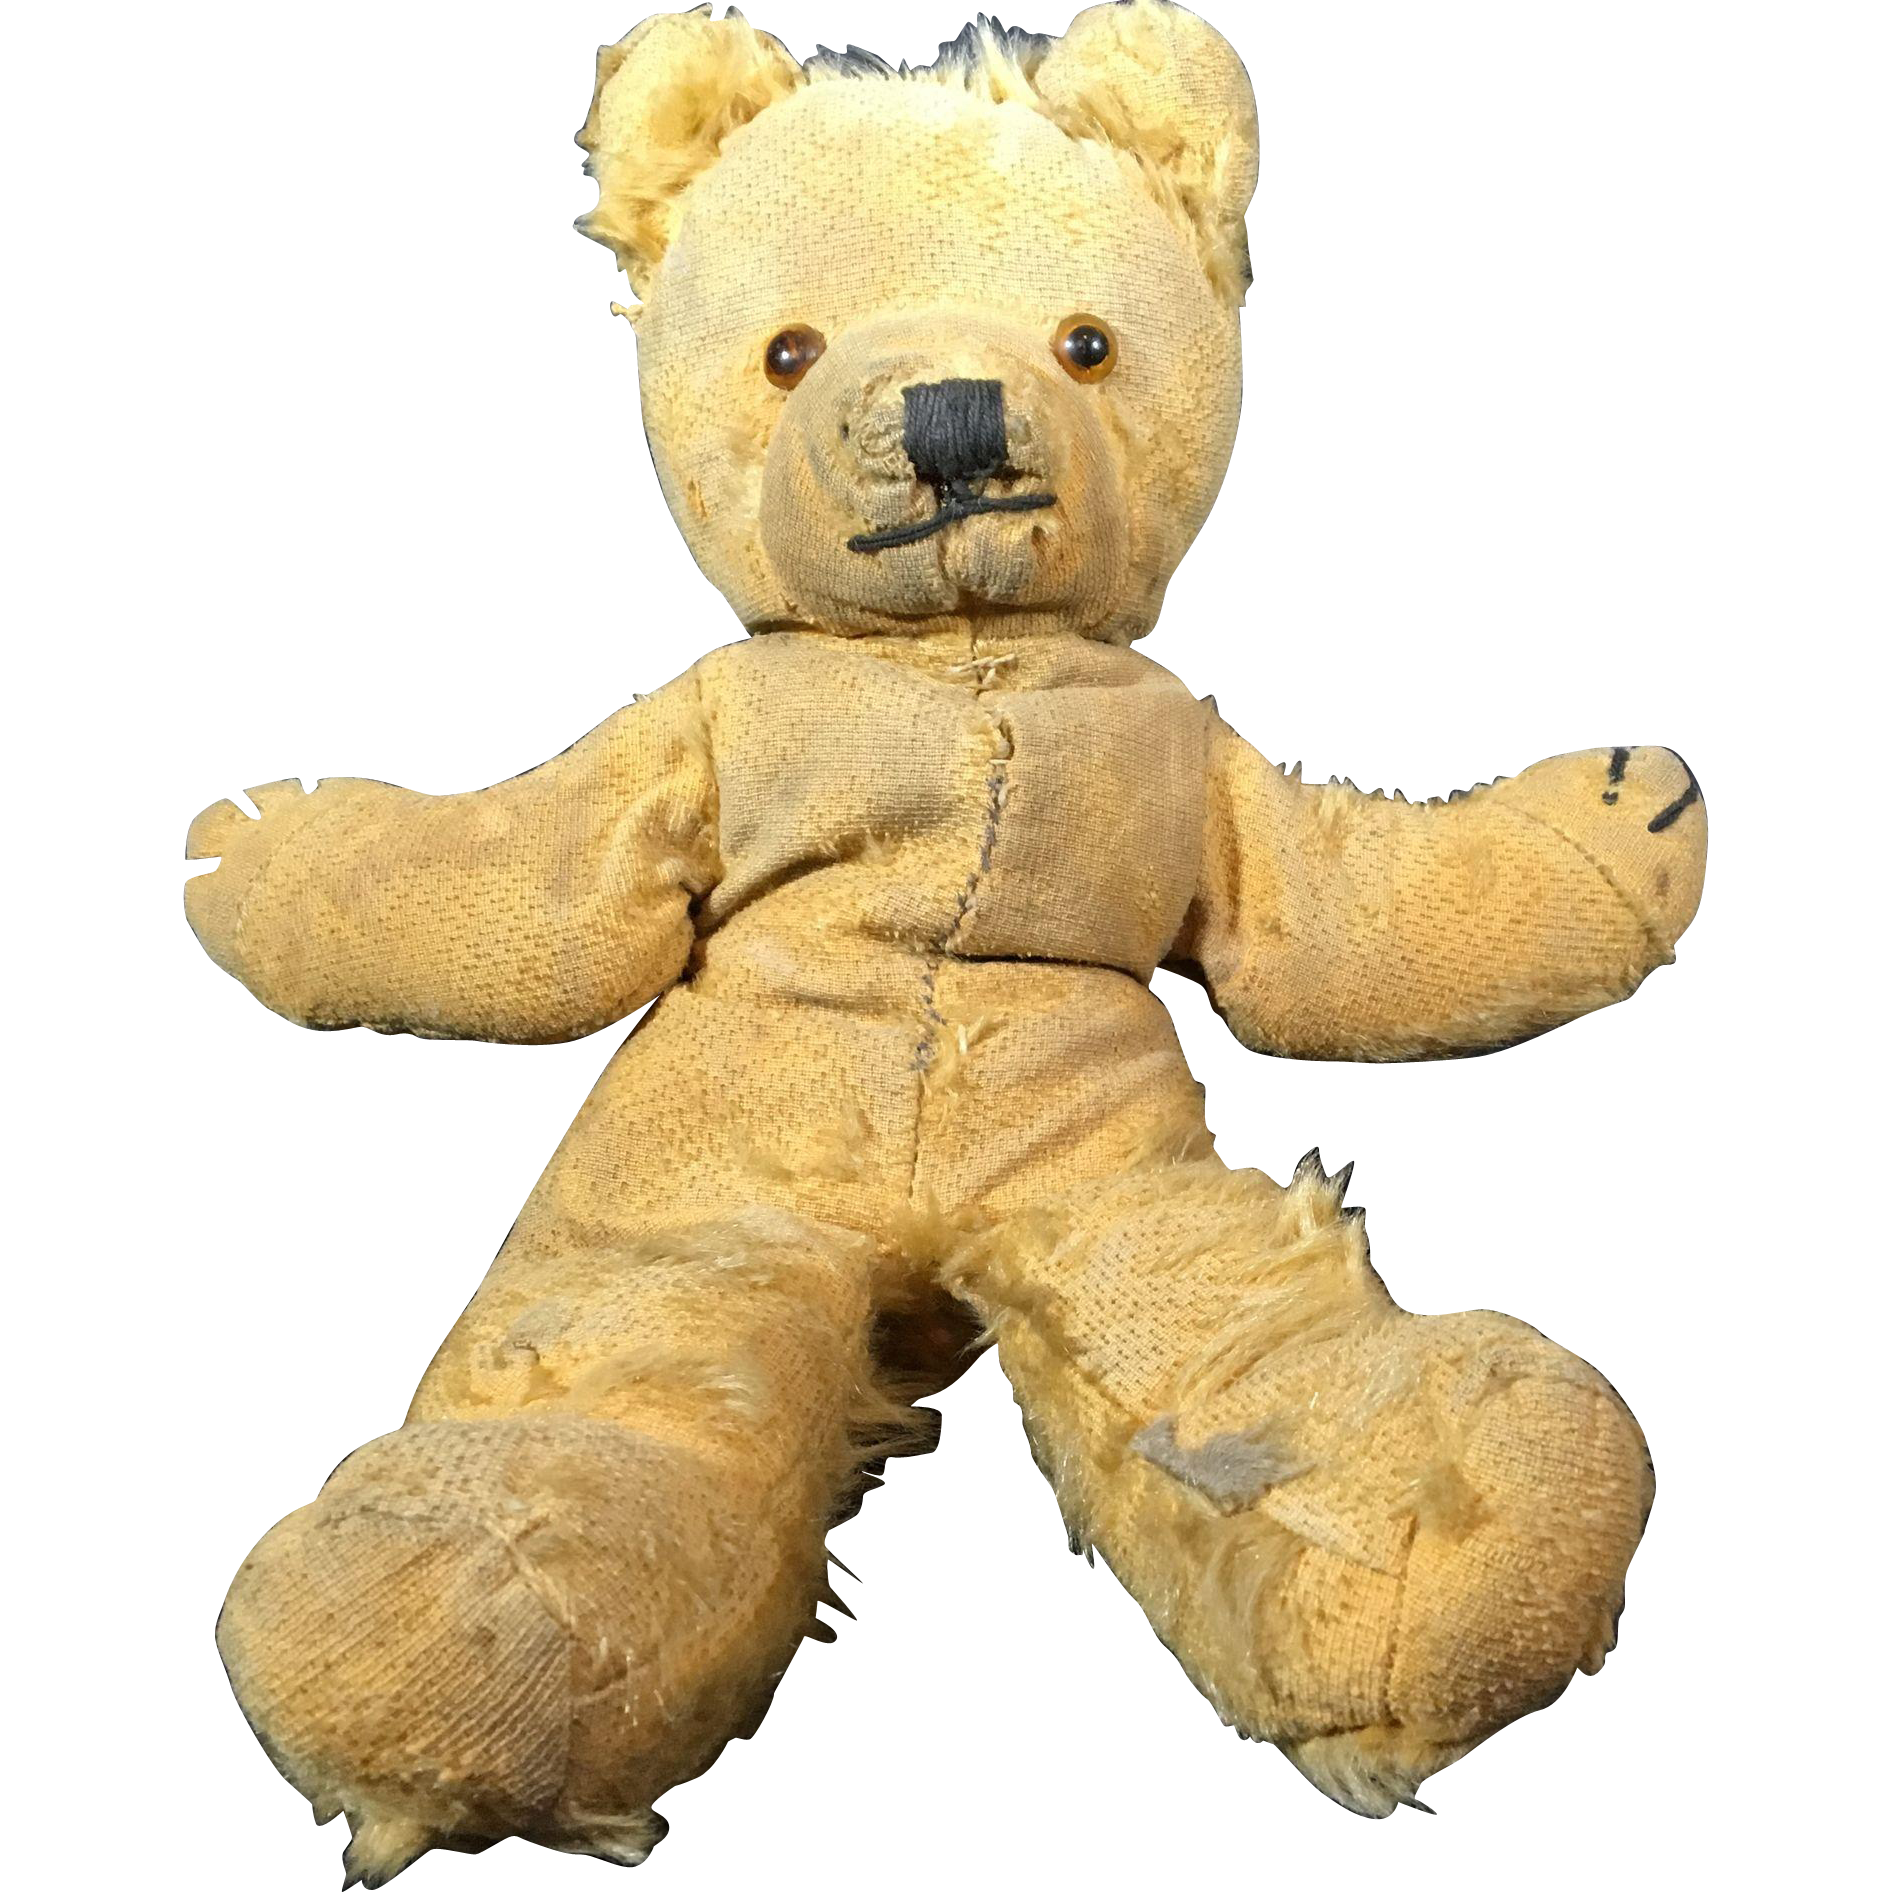 Old Teddy Bear, 'Mr. England'